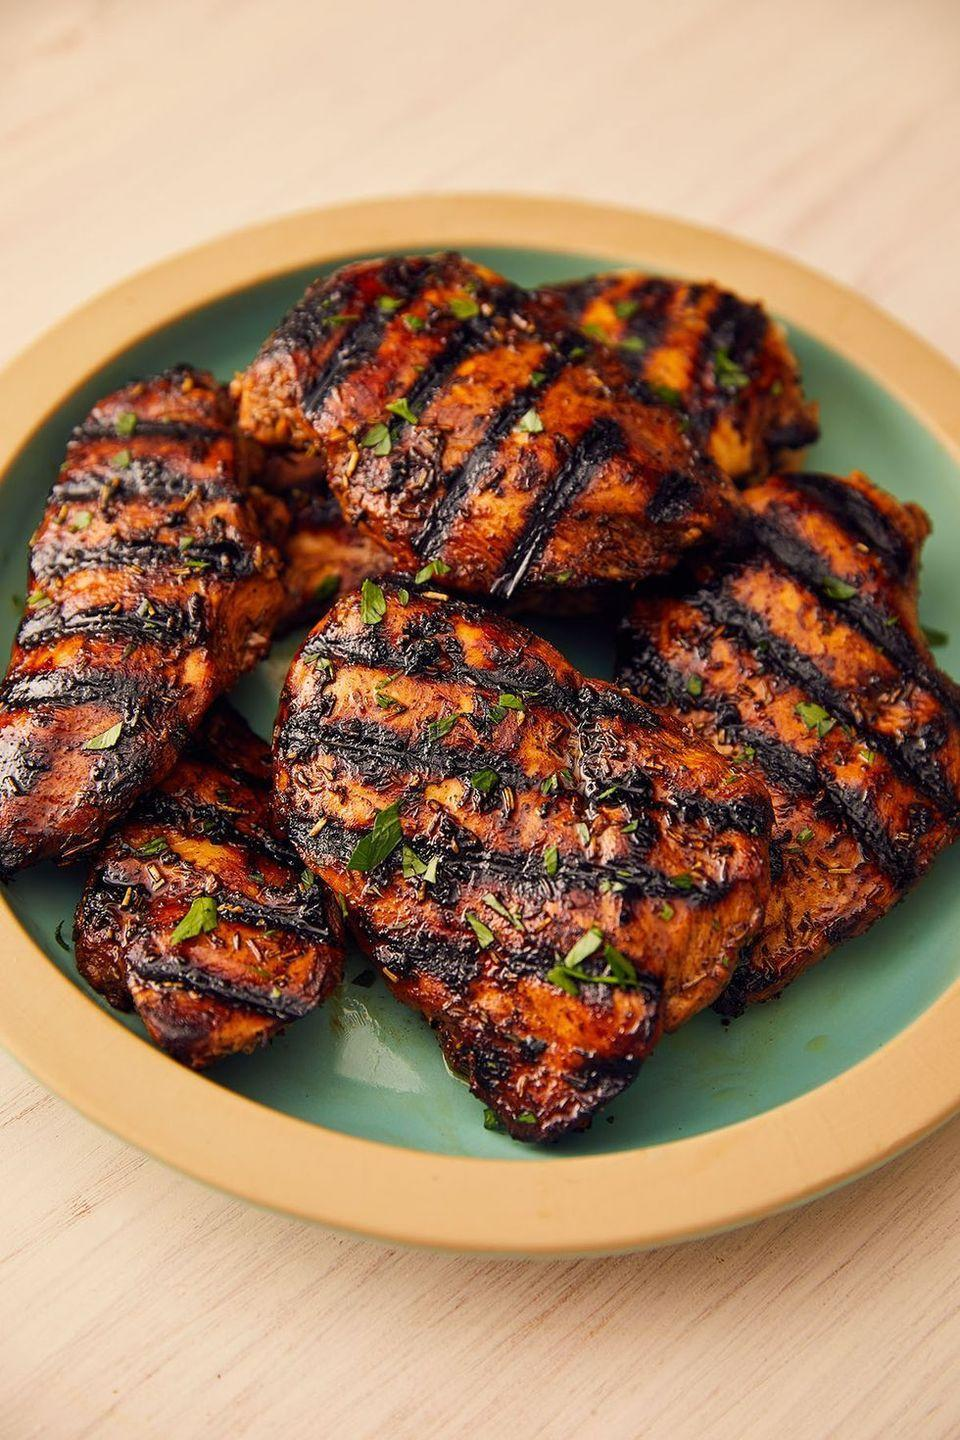 """<p>Grilled chicken breasts can be the epitome of boring. Too often they're dried out or rubbery. But when soaked in a super-quick marinade — with balsamic, brown sugar, and dried thyme — you're guaranteed deliciousness.</p><p>Get the <a href=""""https://www.delish.com/uk/cooking/recipes/a28841199/best-grilled-chicken-breast-recipe/"""" rel=""""nofollow noopener"""" target=""""_blank"""" data-ylk=""""slk:Grilled Chicken"""" class=""""link rapid-noclick-resp"""">Grilled Chicken</a> recipe.</p>"""